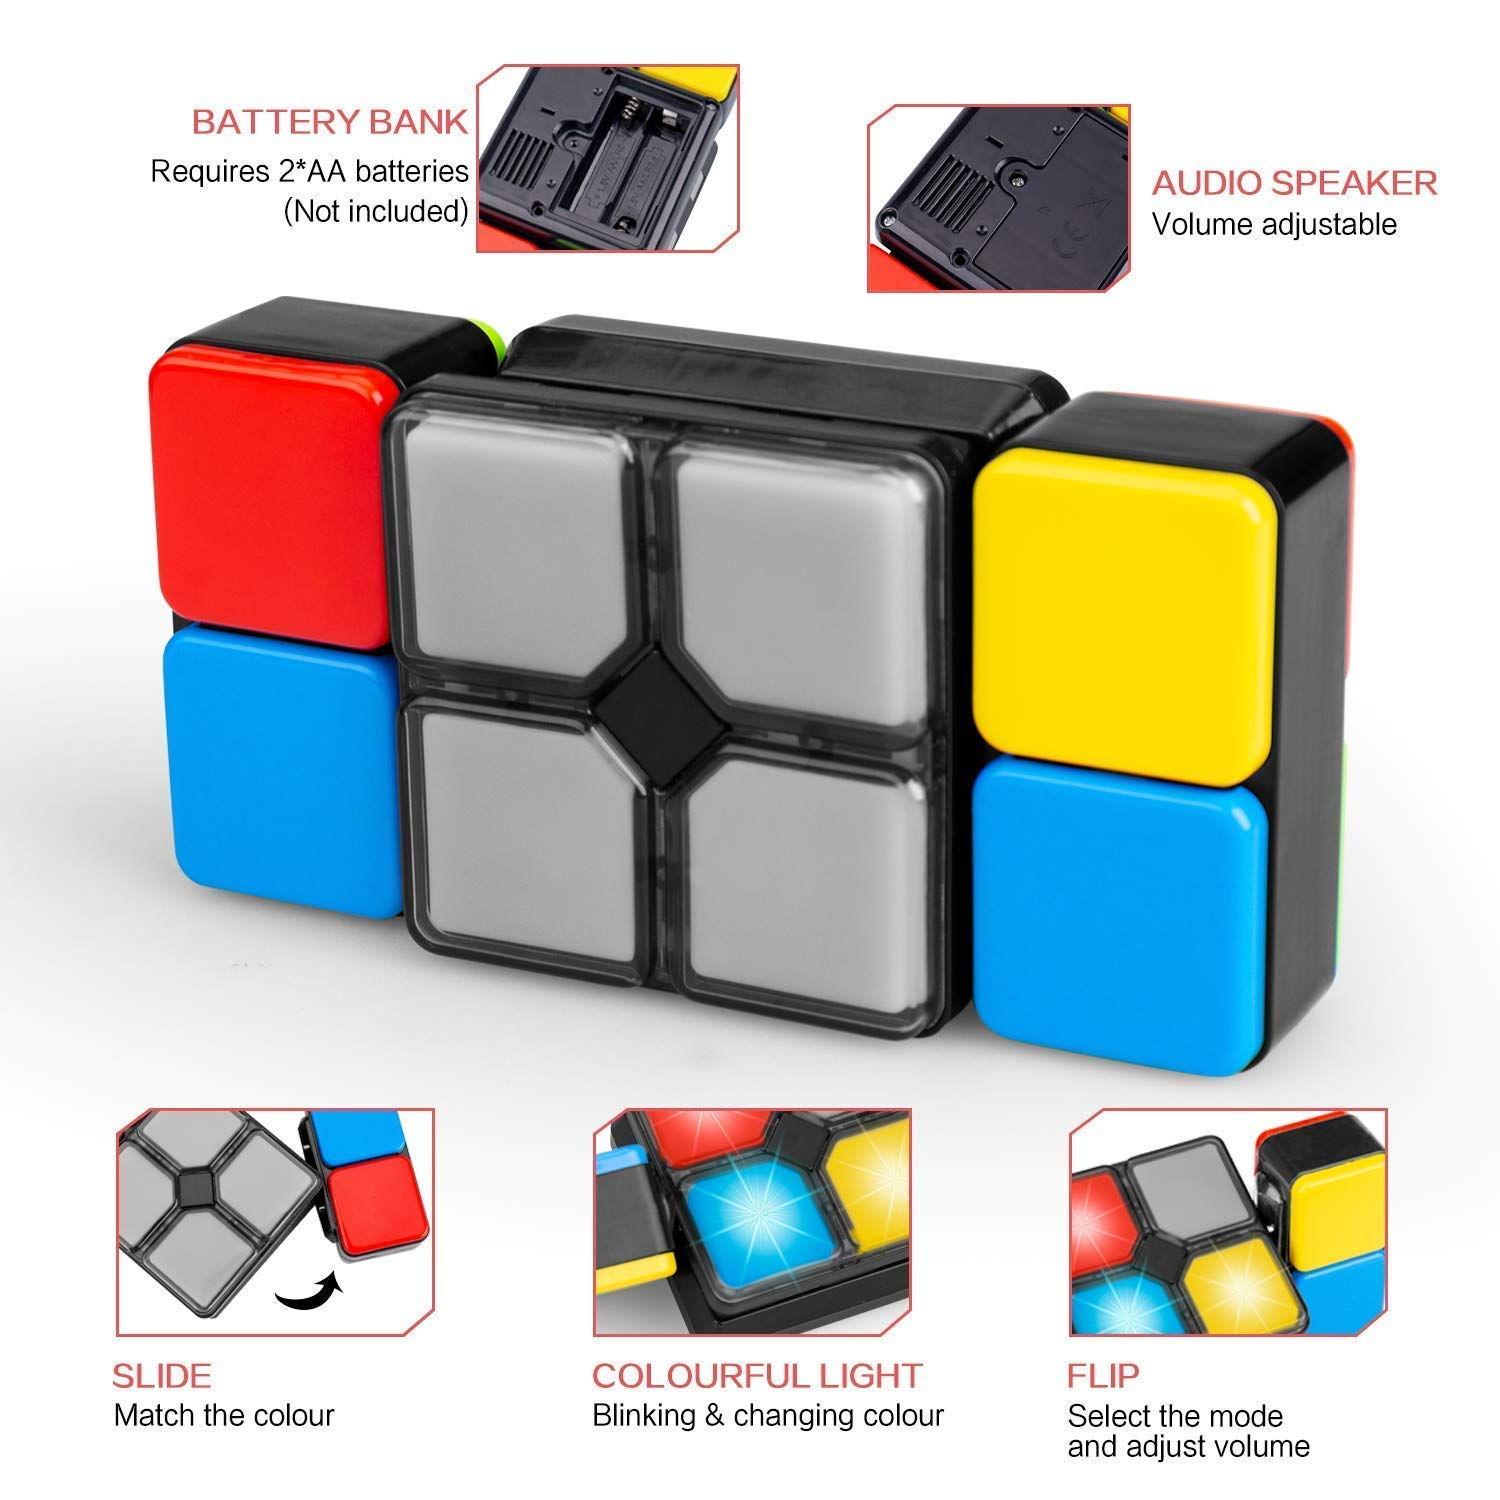 Shonmau Parent-Child Interactive Toy, Children Interactive Electronic Music Cube Puzzle Game for 6+ Ages, Improve Eyesight/Memory/Response Ability, Best Gift for Holiday (Not Equipped AA Battery) by Shonmau